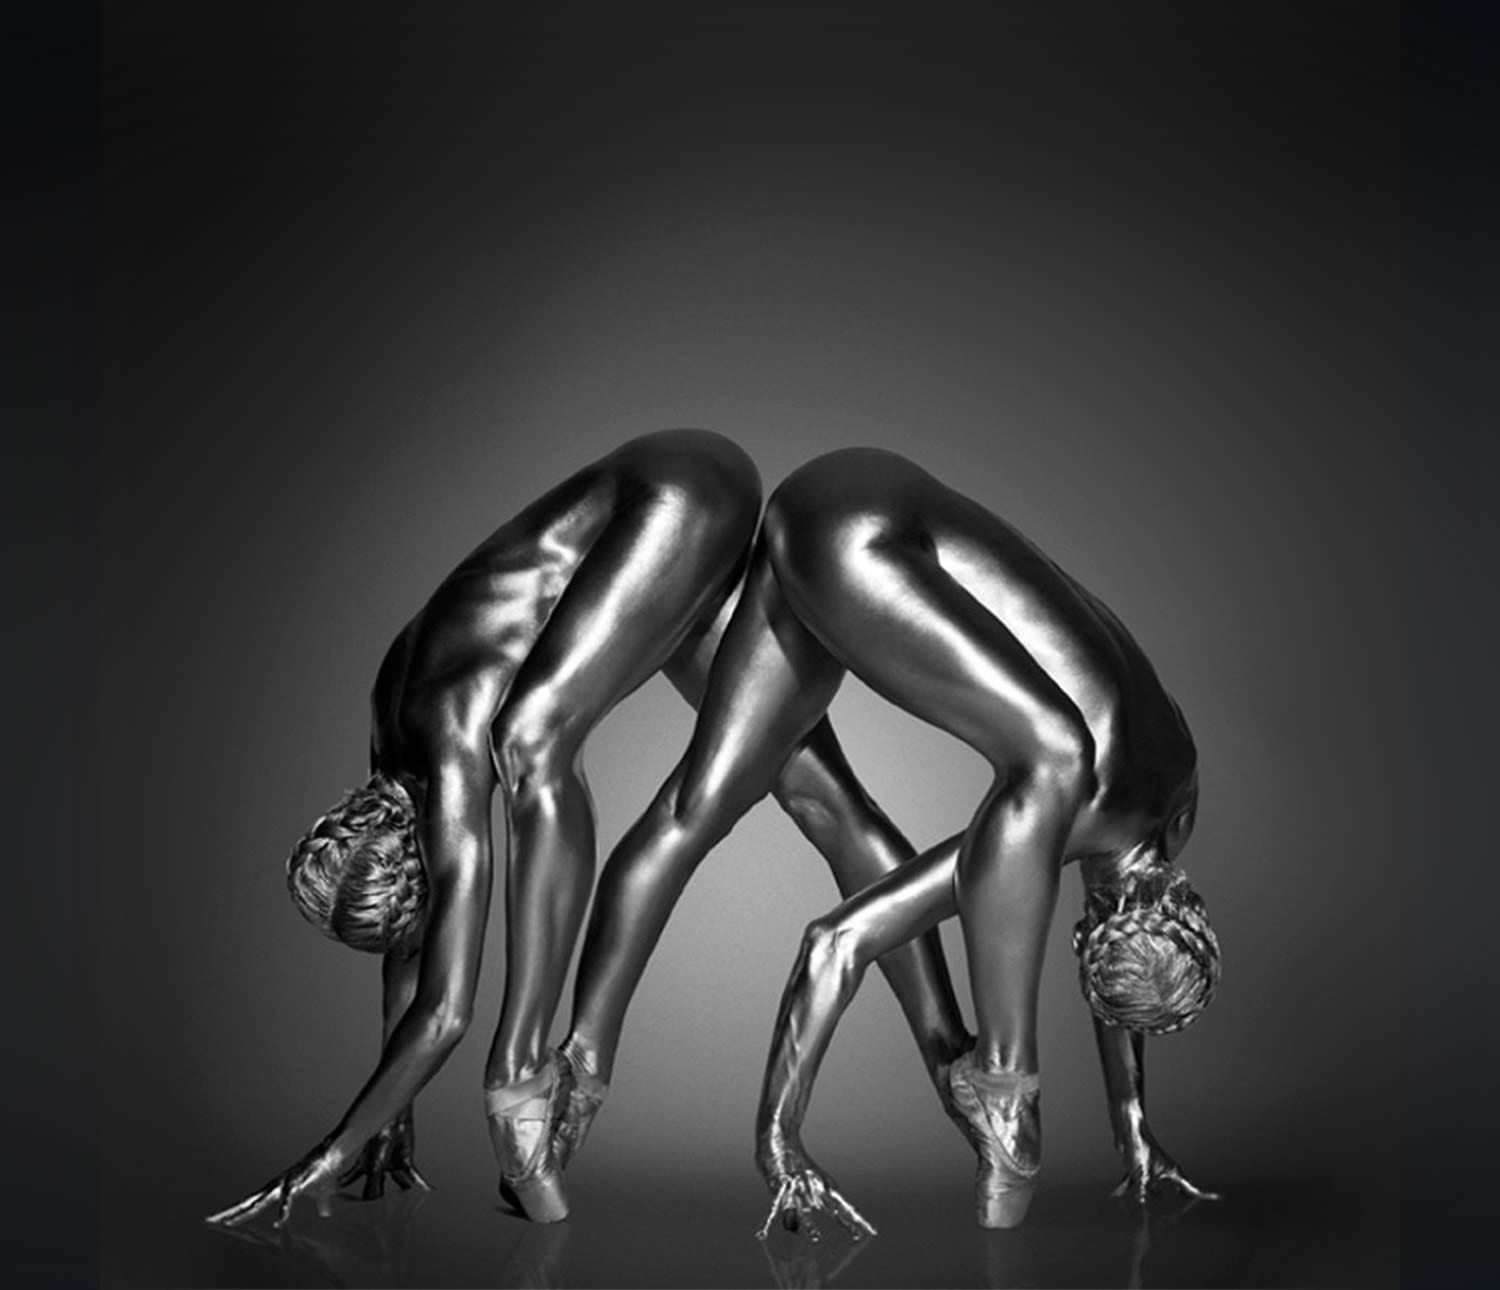 Photographer transforms women into beautiful metallic statues (NSFW)